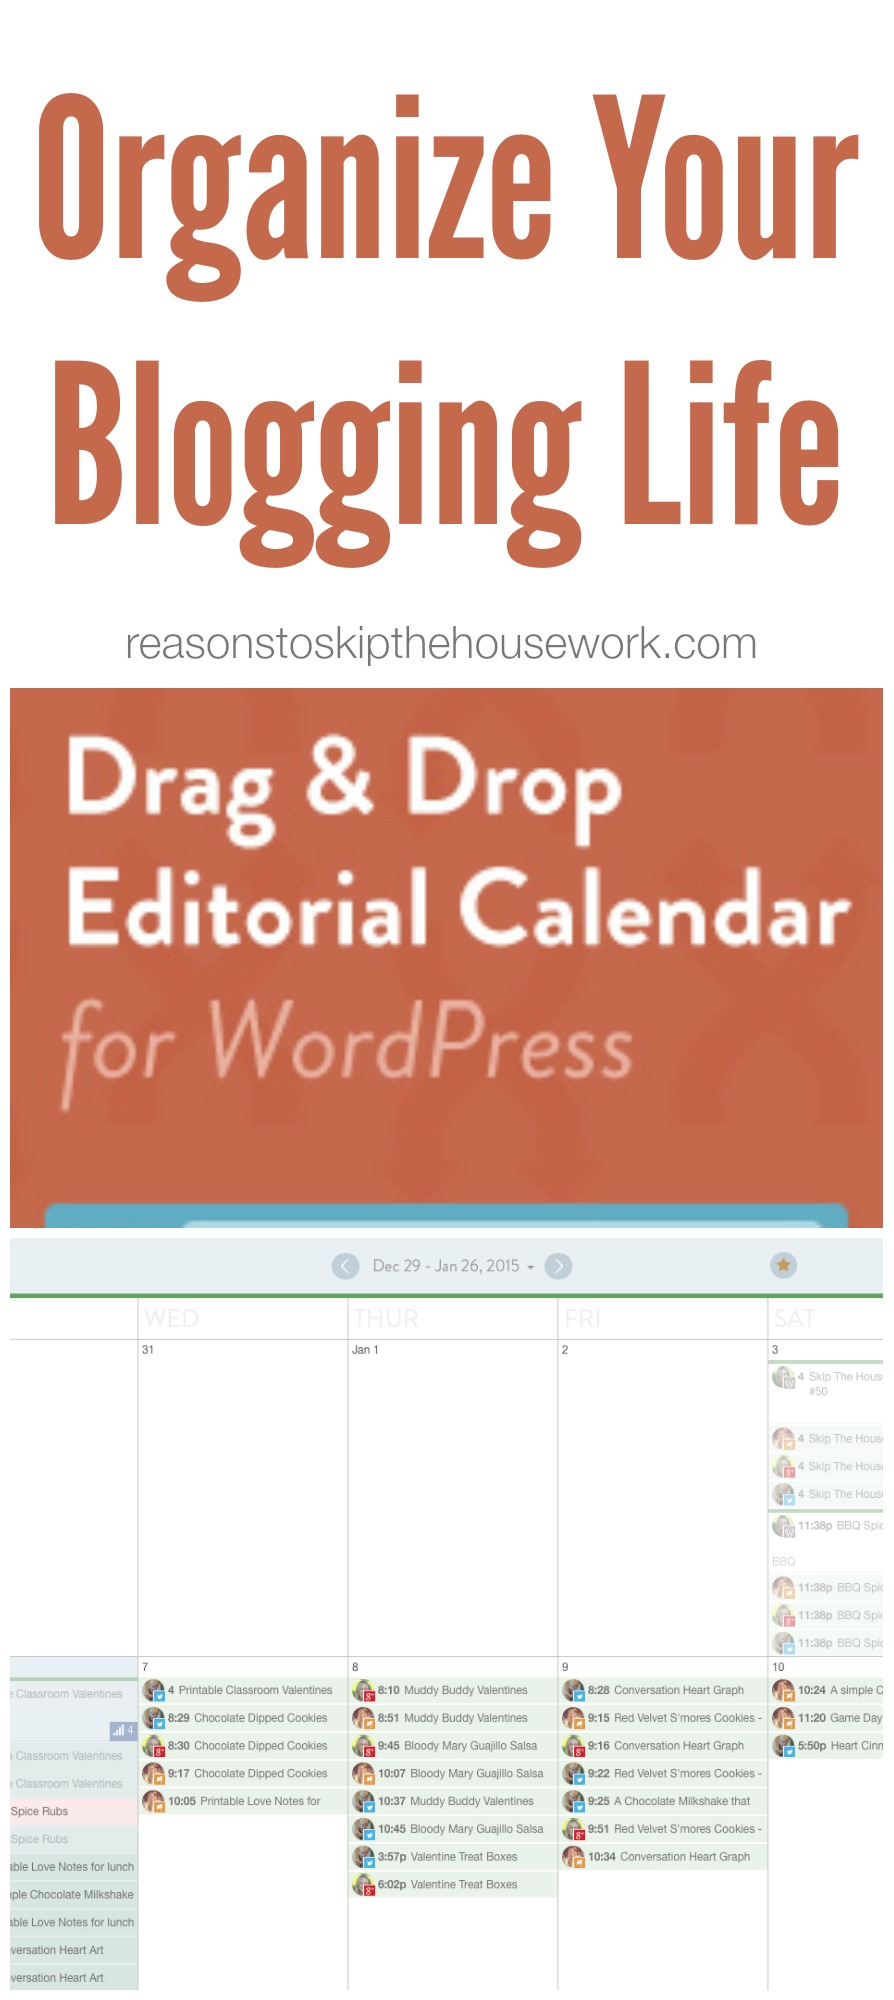 co-schedule editorial calendar for wordpress